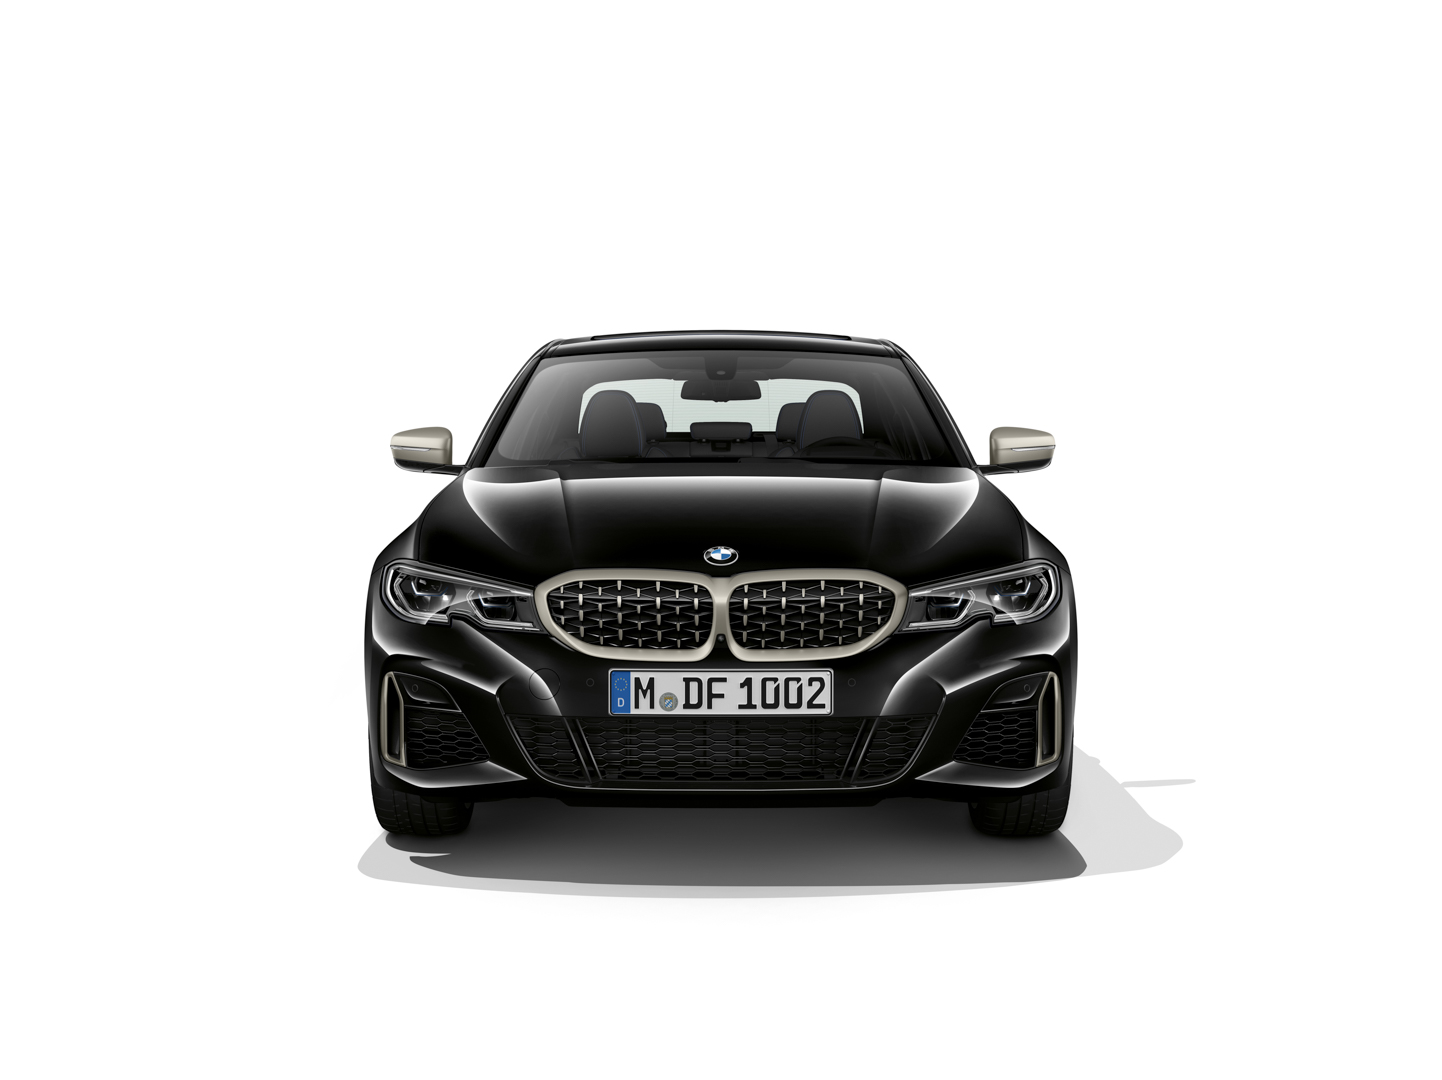 New 2019 BMW 3 Series - A Design Overview